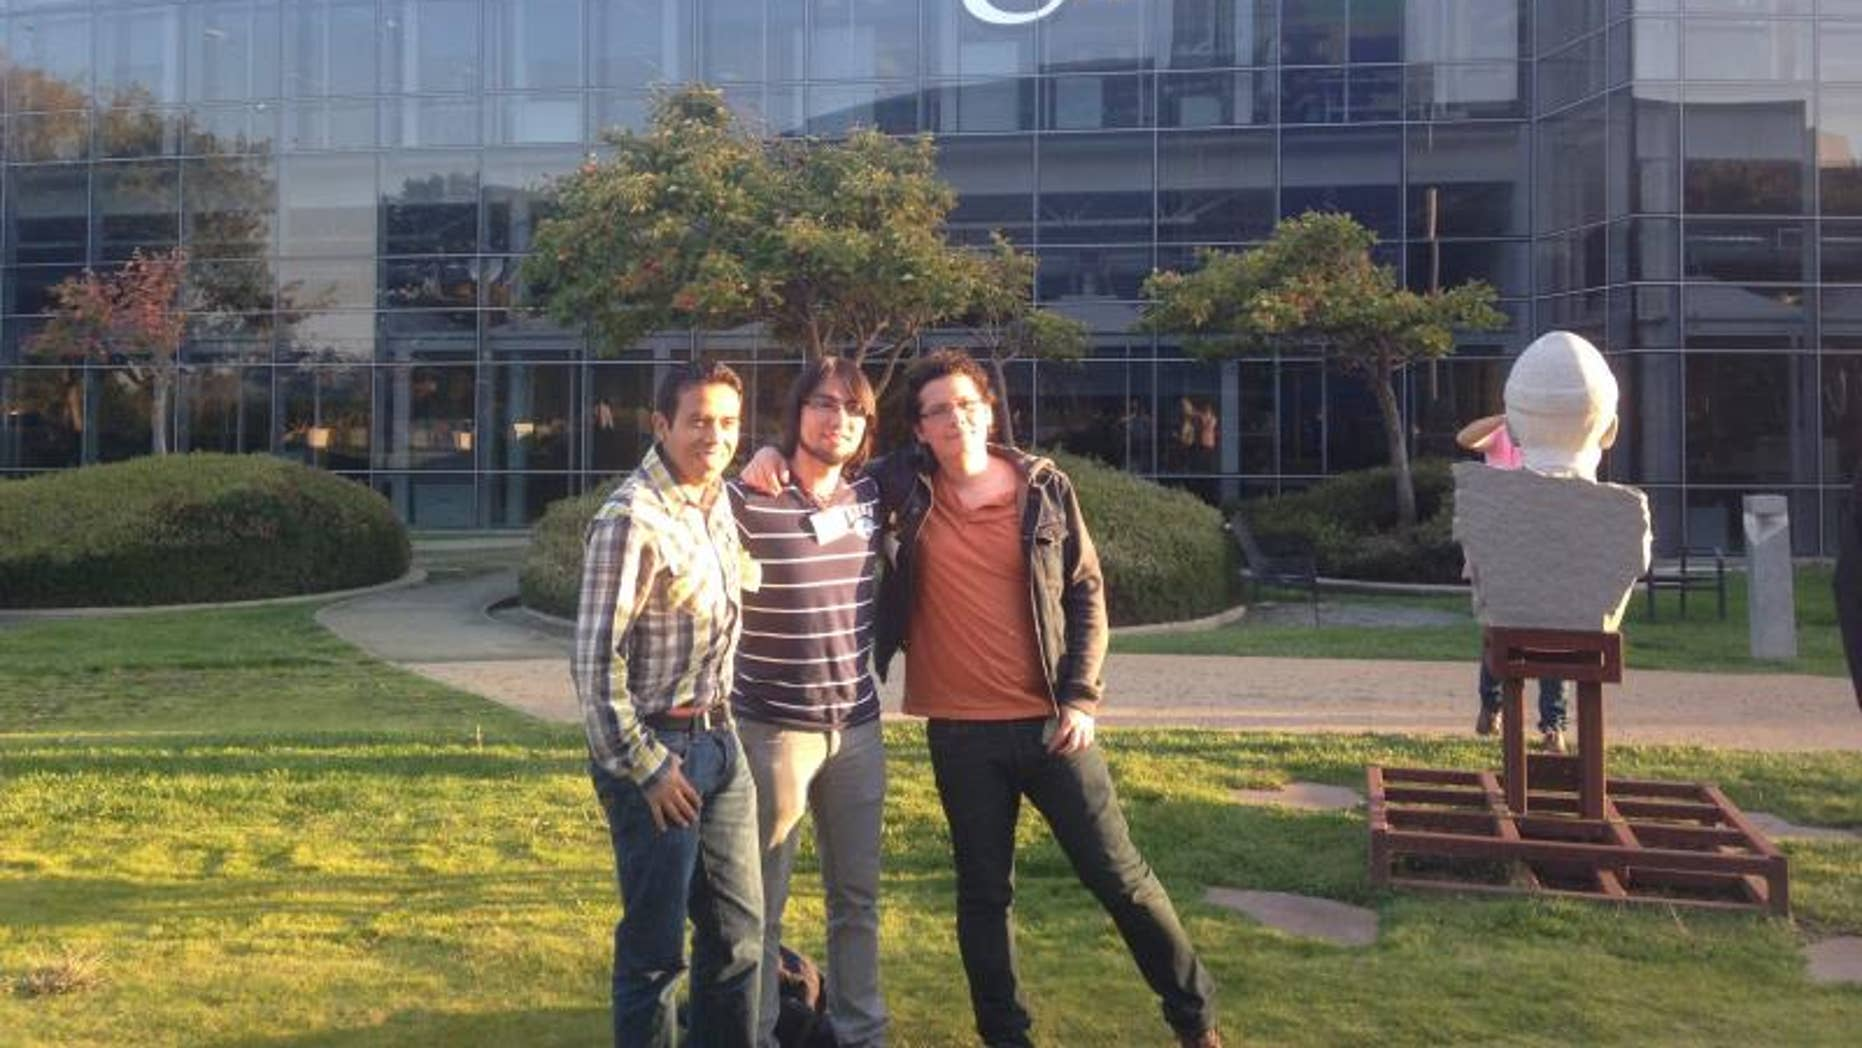 Mexican programmers Edgar Hernandez, Jose Alberto Garcia and Abraham Cornejo quit their jobs and bet everything on a dream called Hostspot that has taken them to Silicon Valley